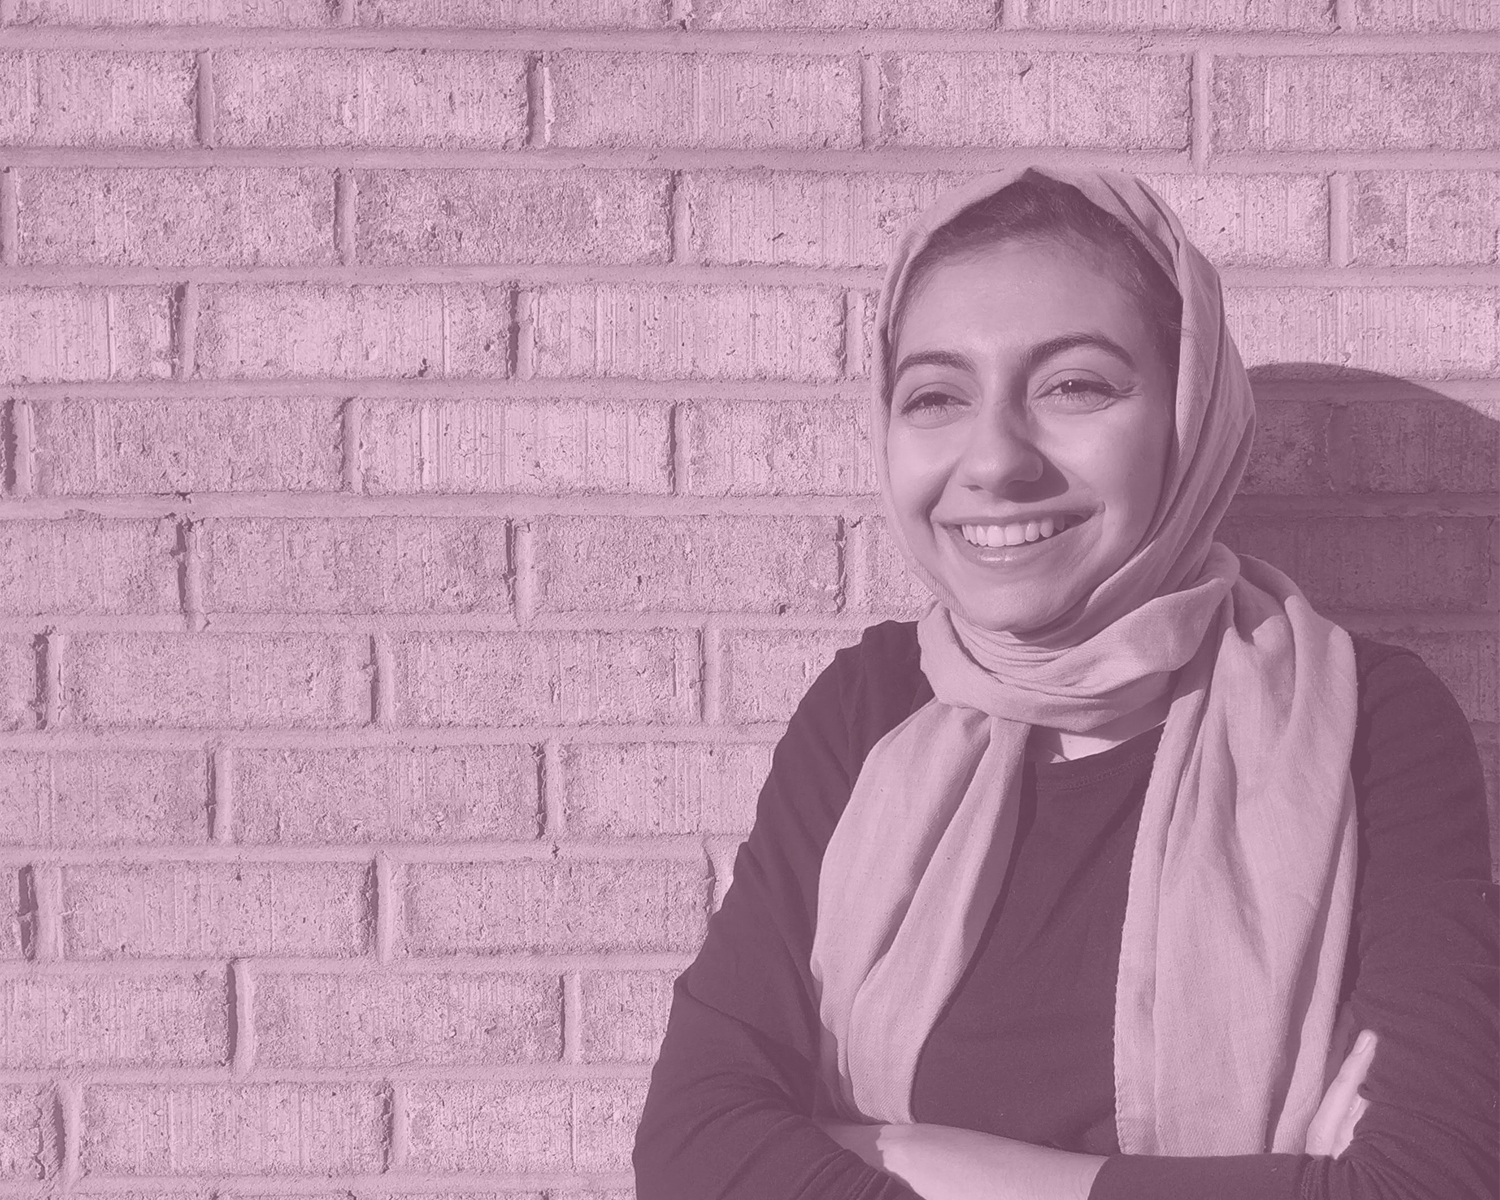 Dalia Ahmed - Dalia is creating a grow light system for plants in small, urban settings. It will be designed specifically for beginners who have no experience with gardening.